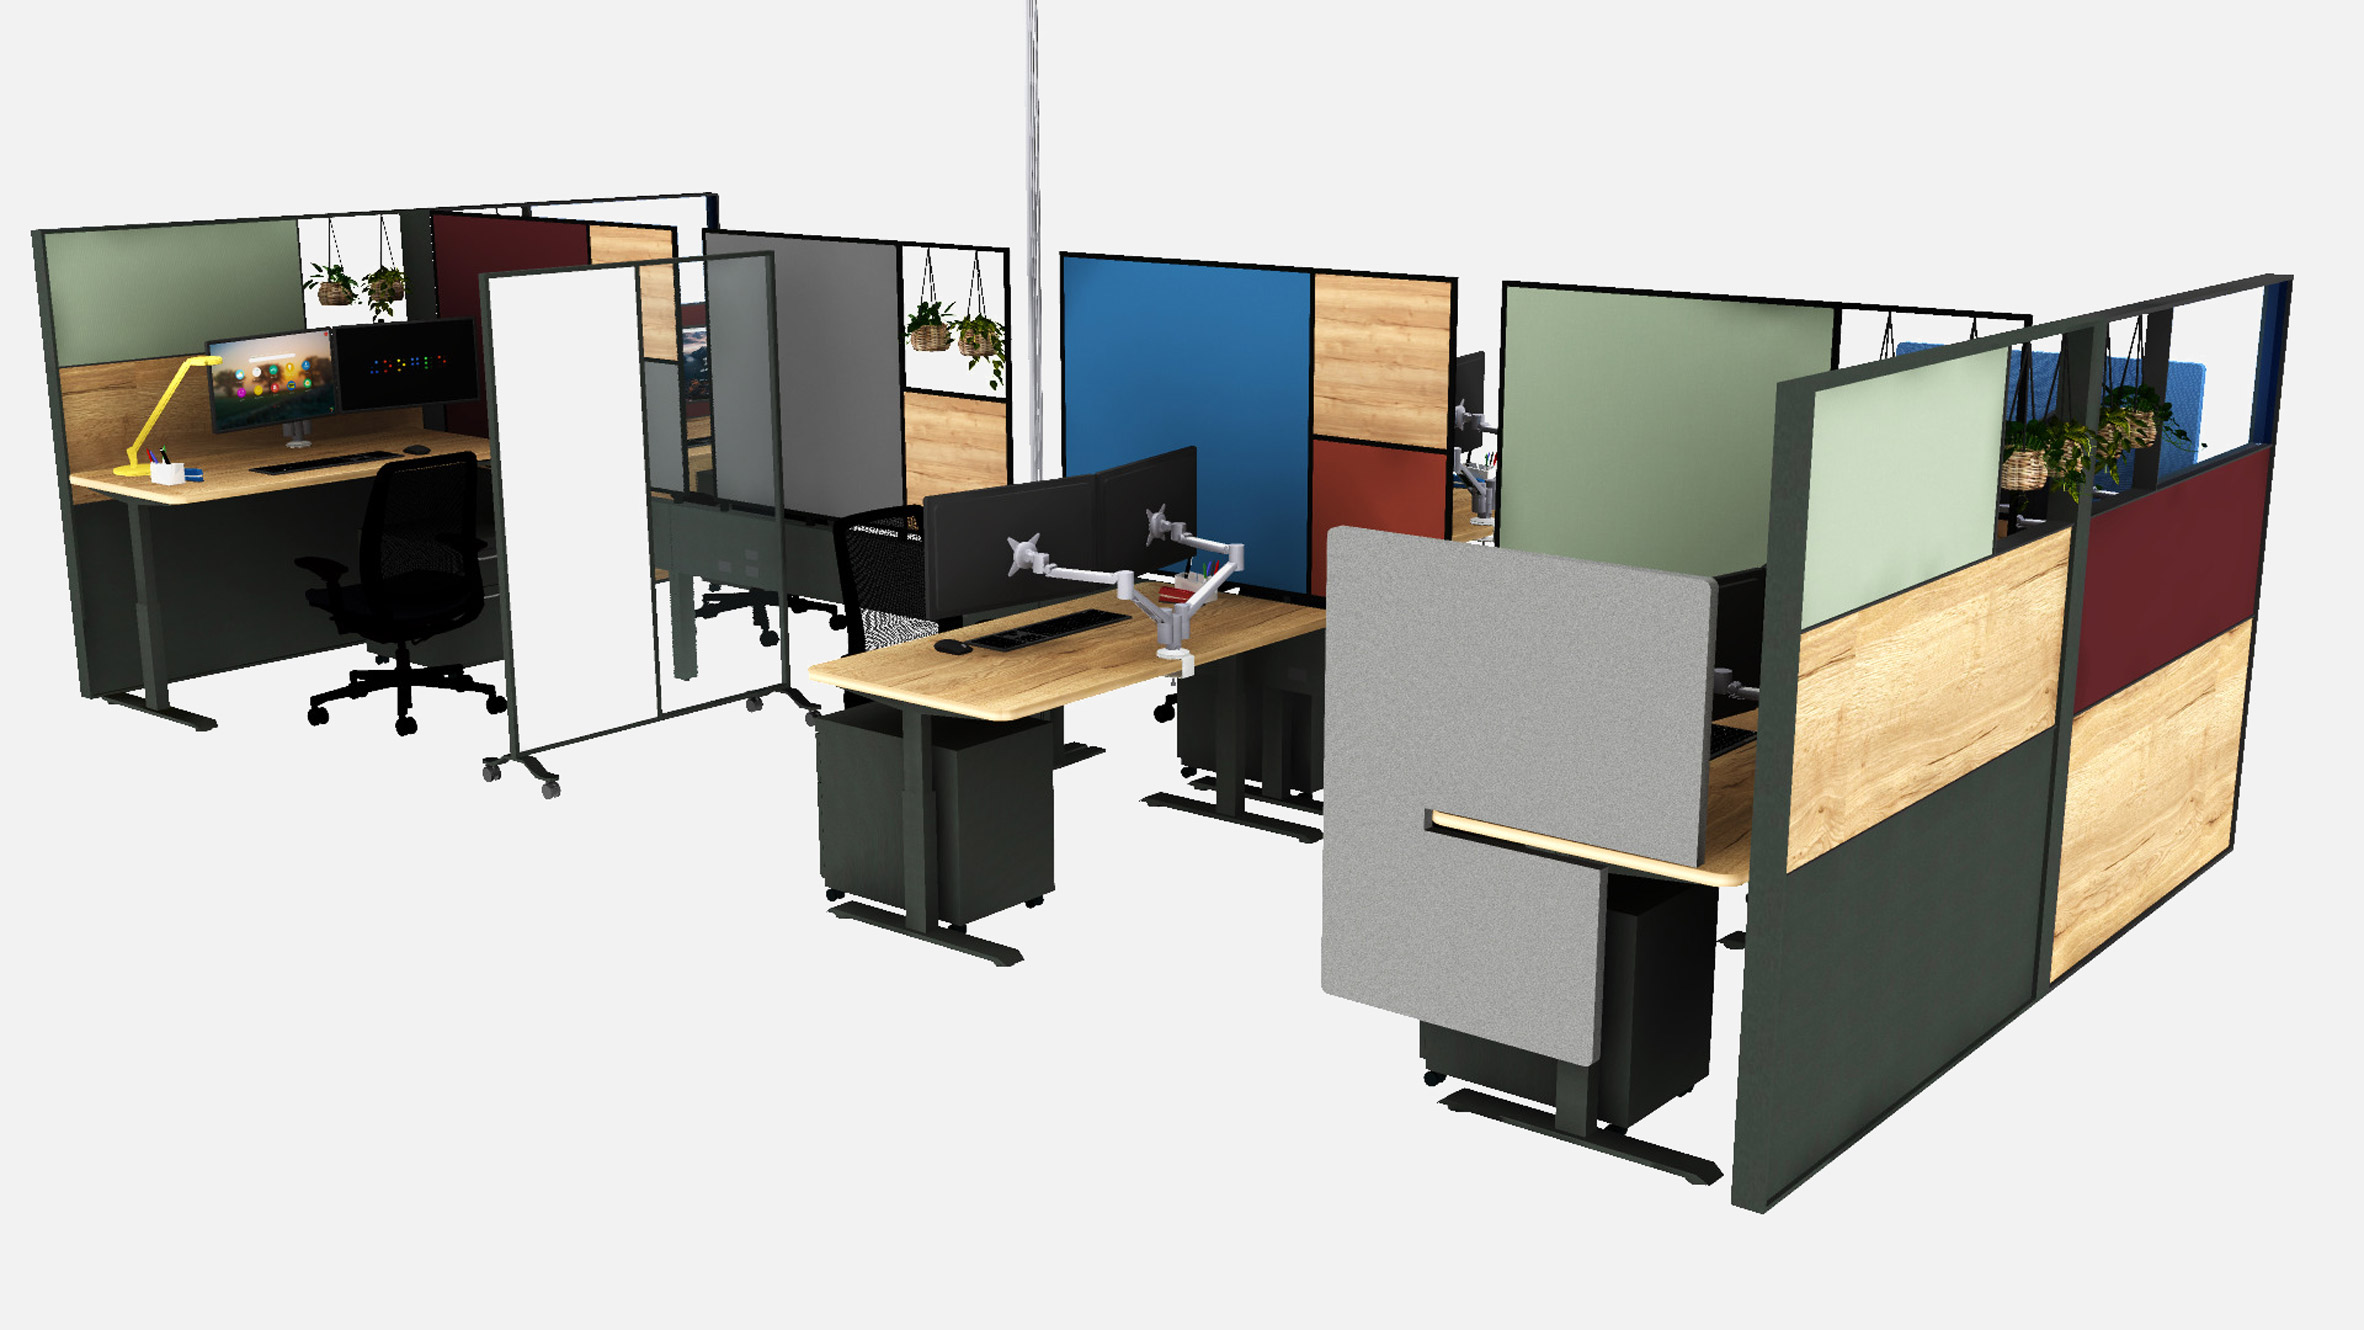 Post coronavirus cubicle will become normal says Paul Ferro of Form4 Architecture